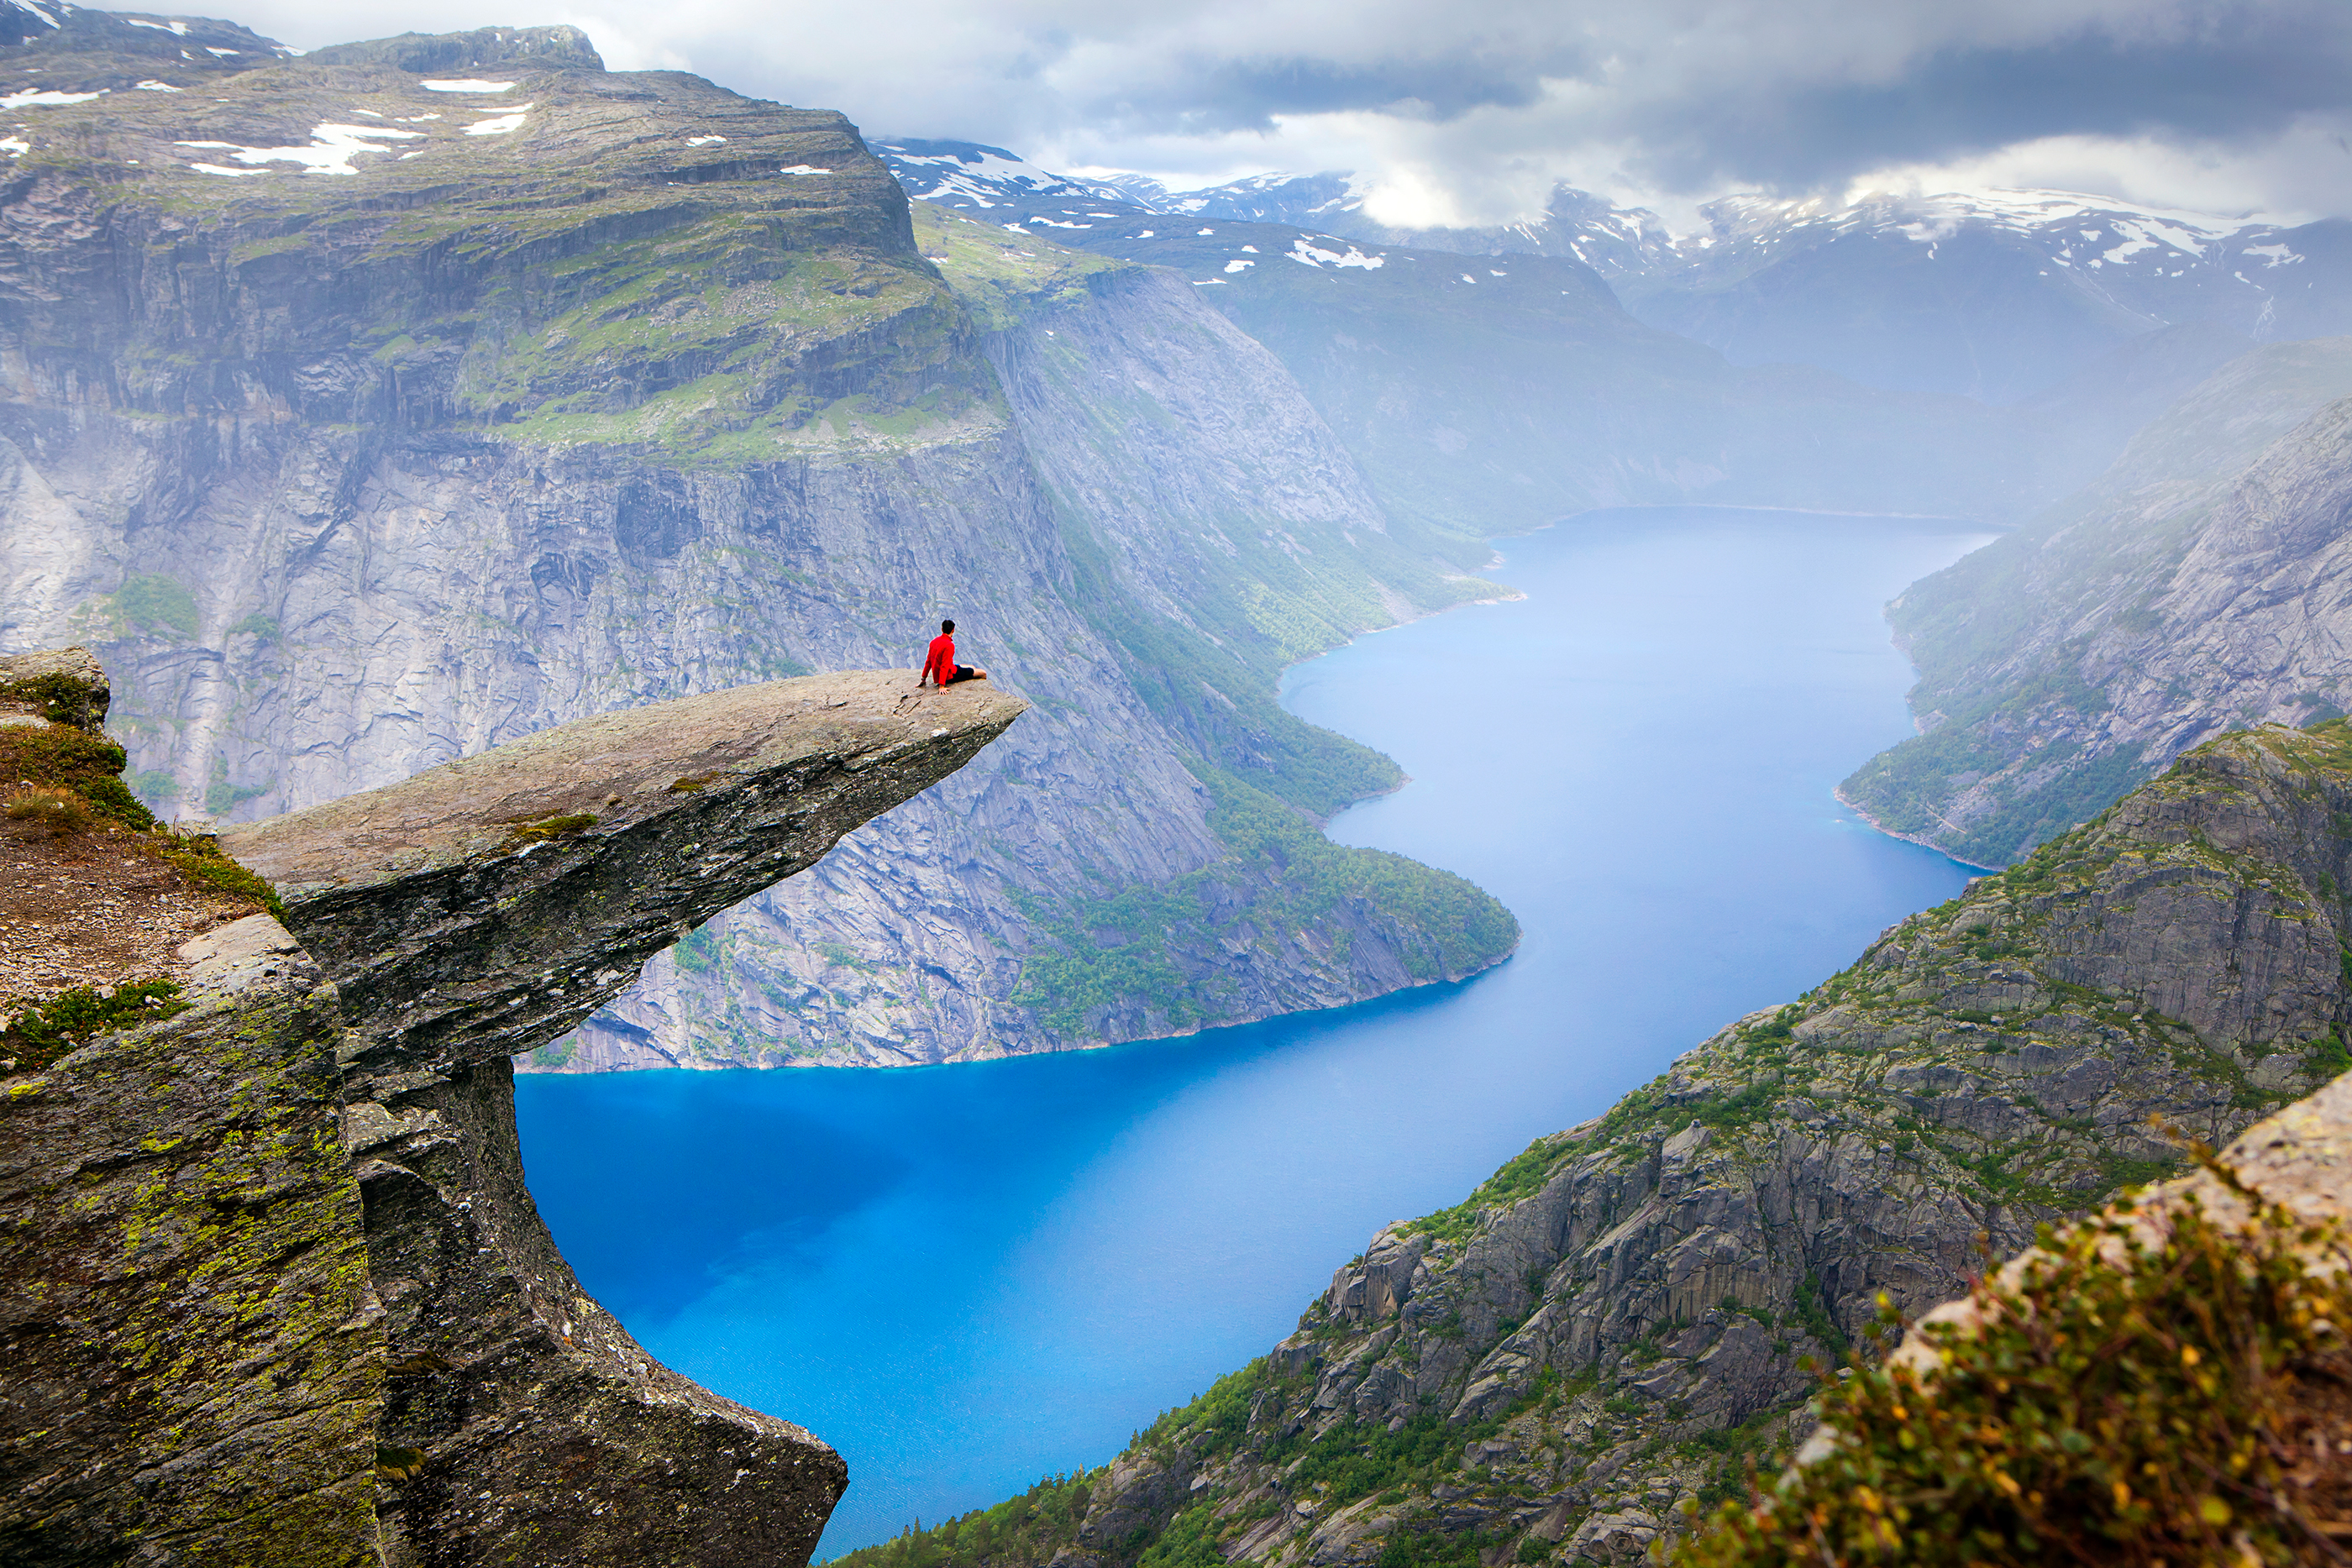 12 of the World's Top Trekking Destinations To Put On Your Bucket List